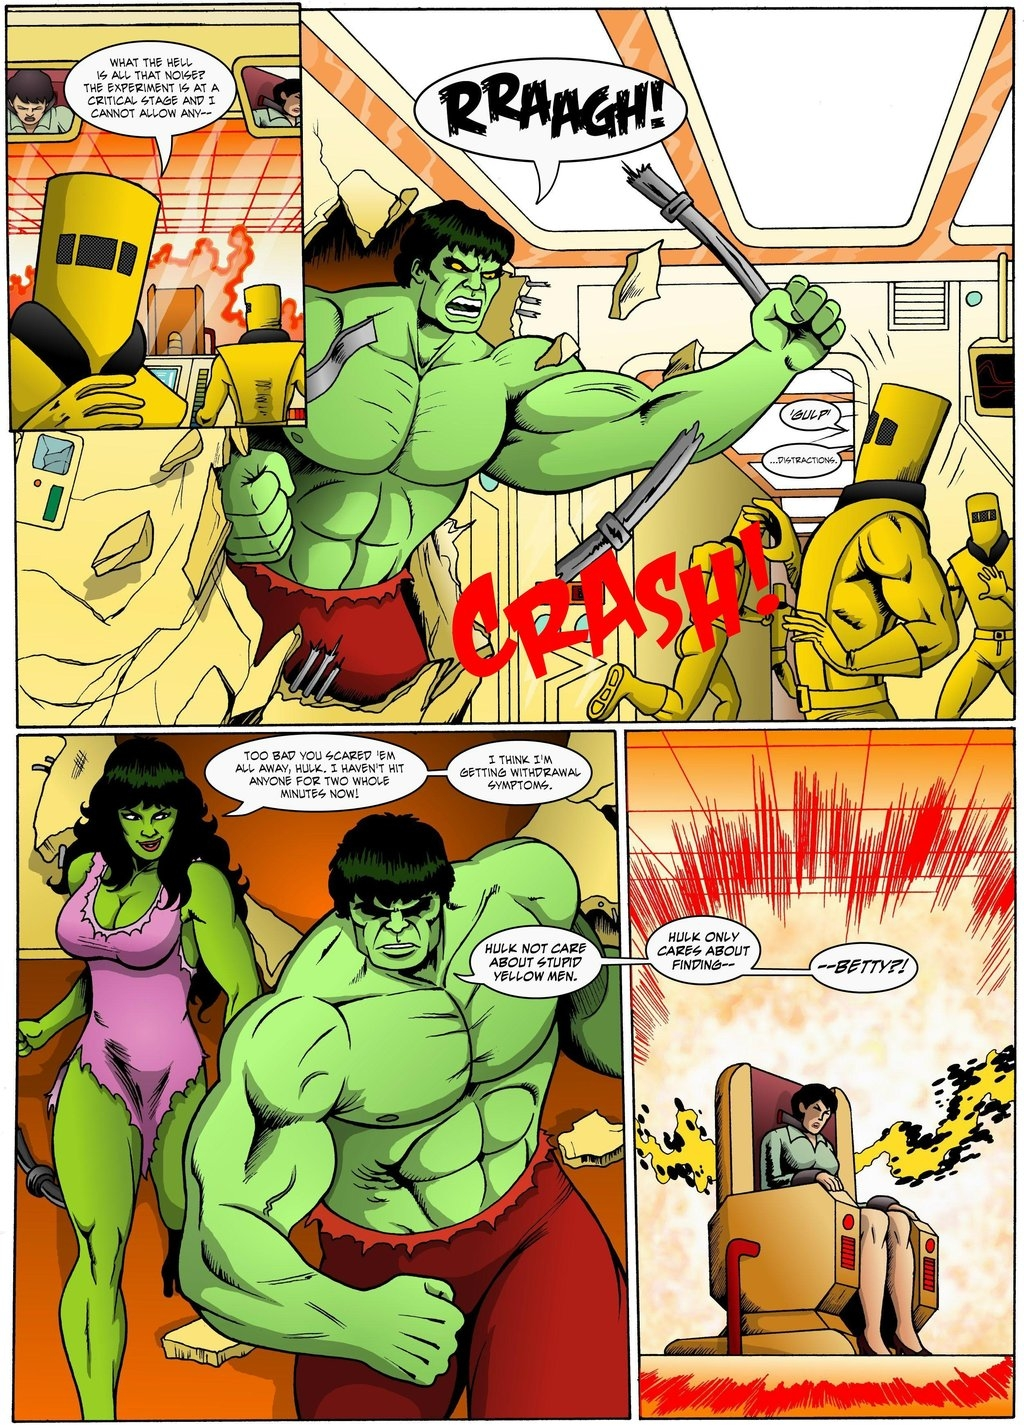 incredible hulk coloring pages - The Incredible Hulk Red Alert Page 17